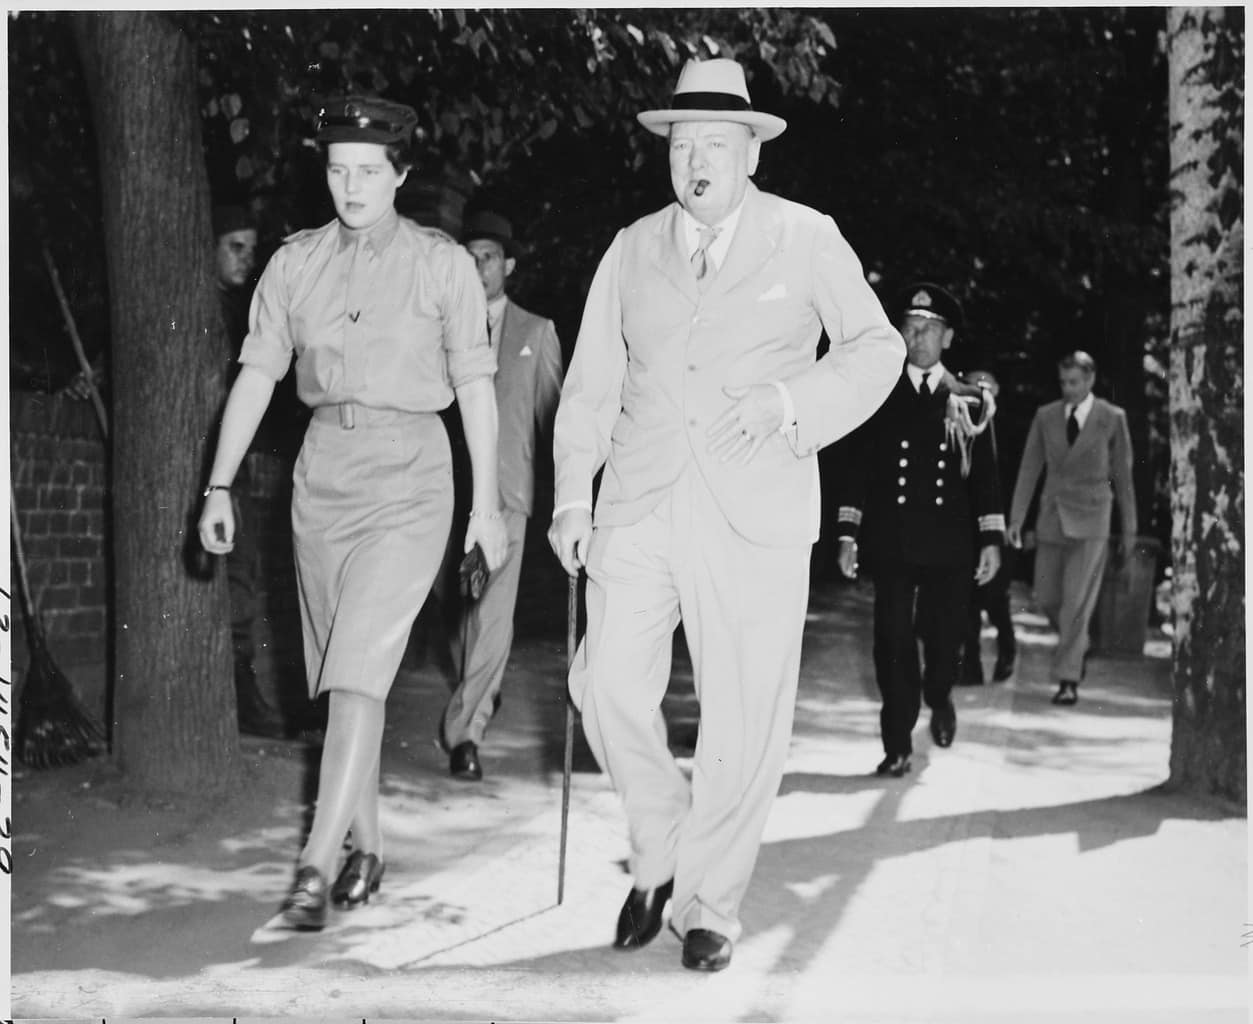 """The Potsdam Conference - July 16th 1945 - Prime Minister Winston Churchill of Great Britain, accompanied by his daughter, Mary Churchill, leaves the """"Little White House"""""""